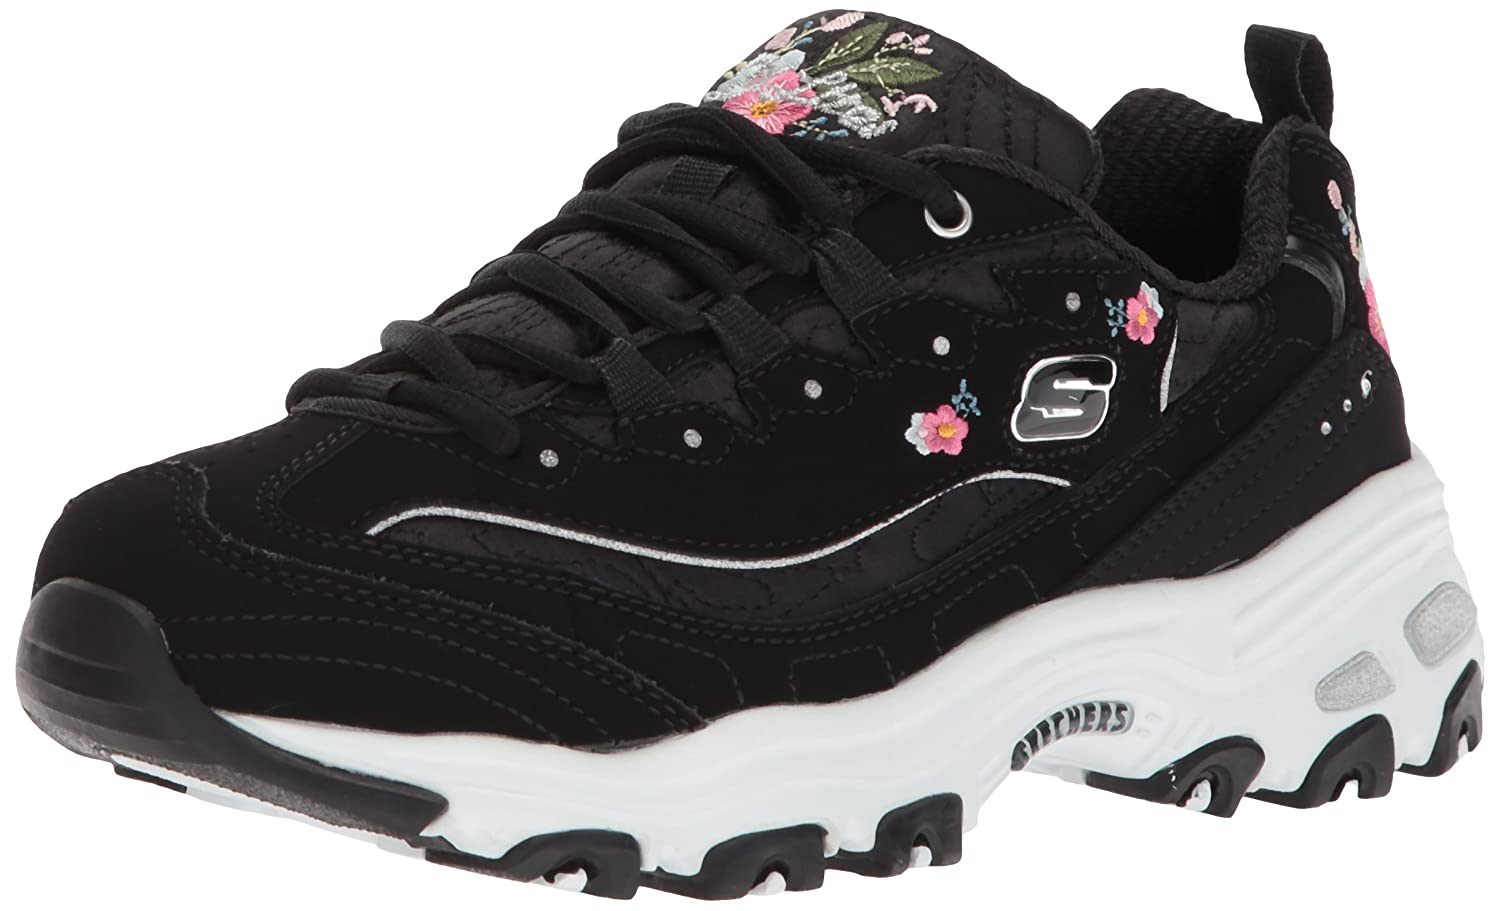 Skechers D'lites Bright Blossoms 11977-b, Zapatillas para Mujer